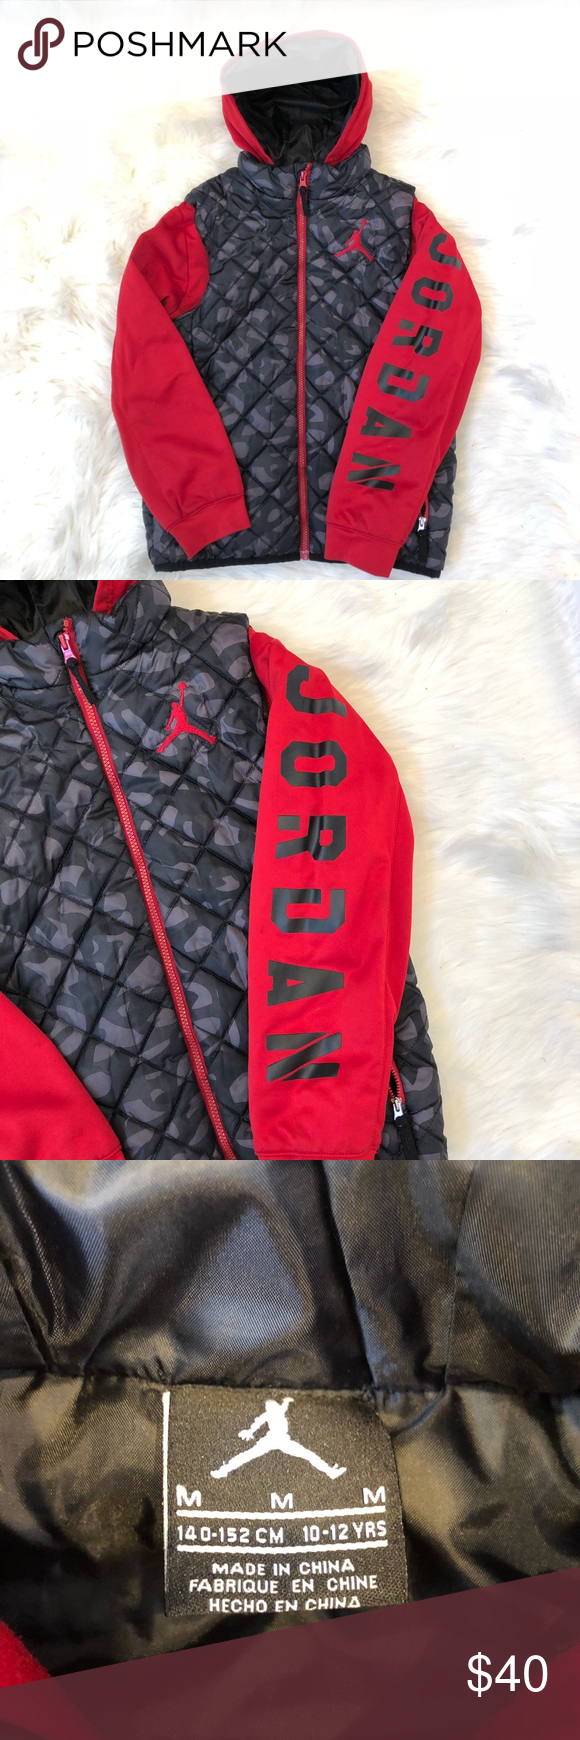 3777d6548d0 JORDAN Boys Youth Quilted Jacket Great preowned condition. Jordan black  camo/red jacket. One flaw, pictured, one stitch came loose at very top at  collar.